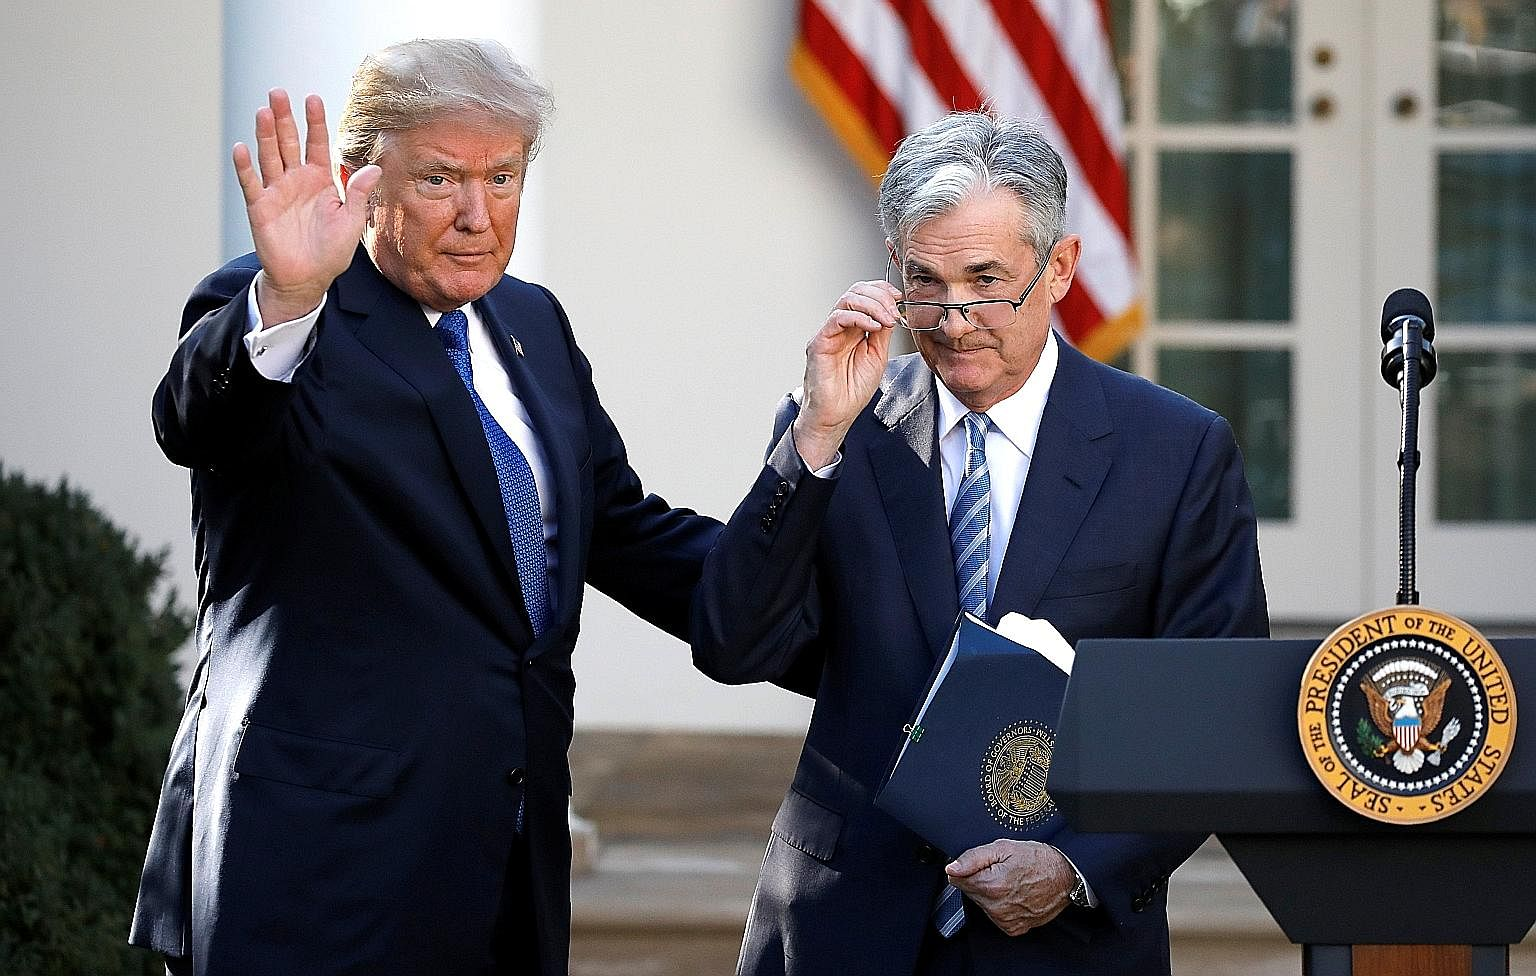 President Donald Trump with Mr Jerome Powell, his nominee to become chairman of the US Federal Reserve, at the White House in Washington last Thursday.